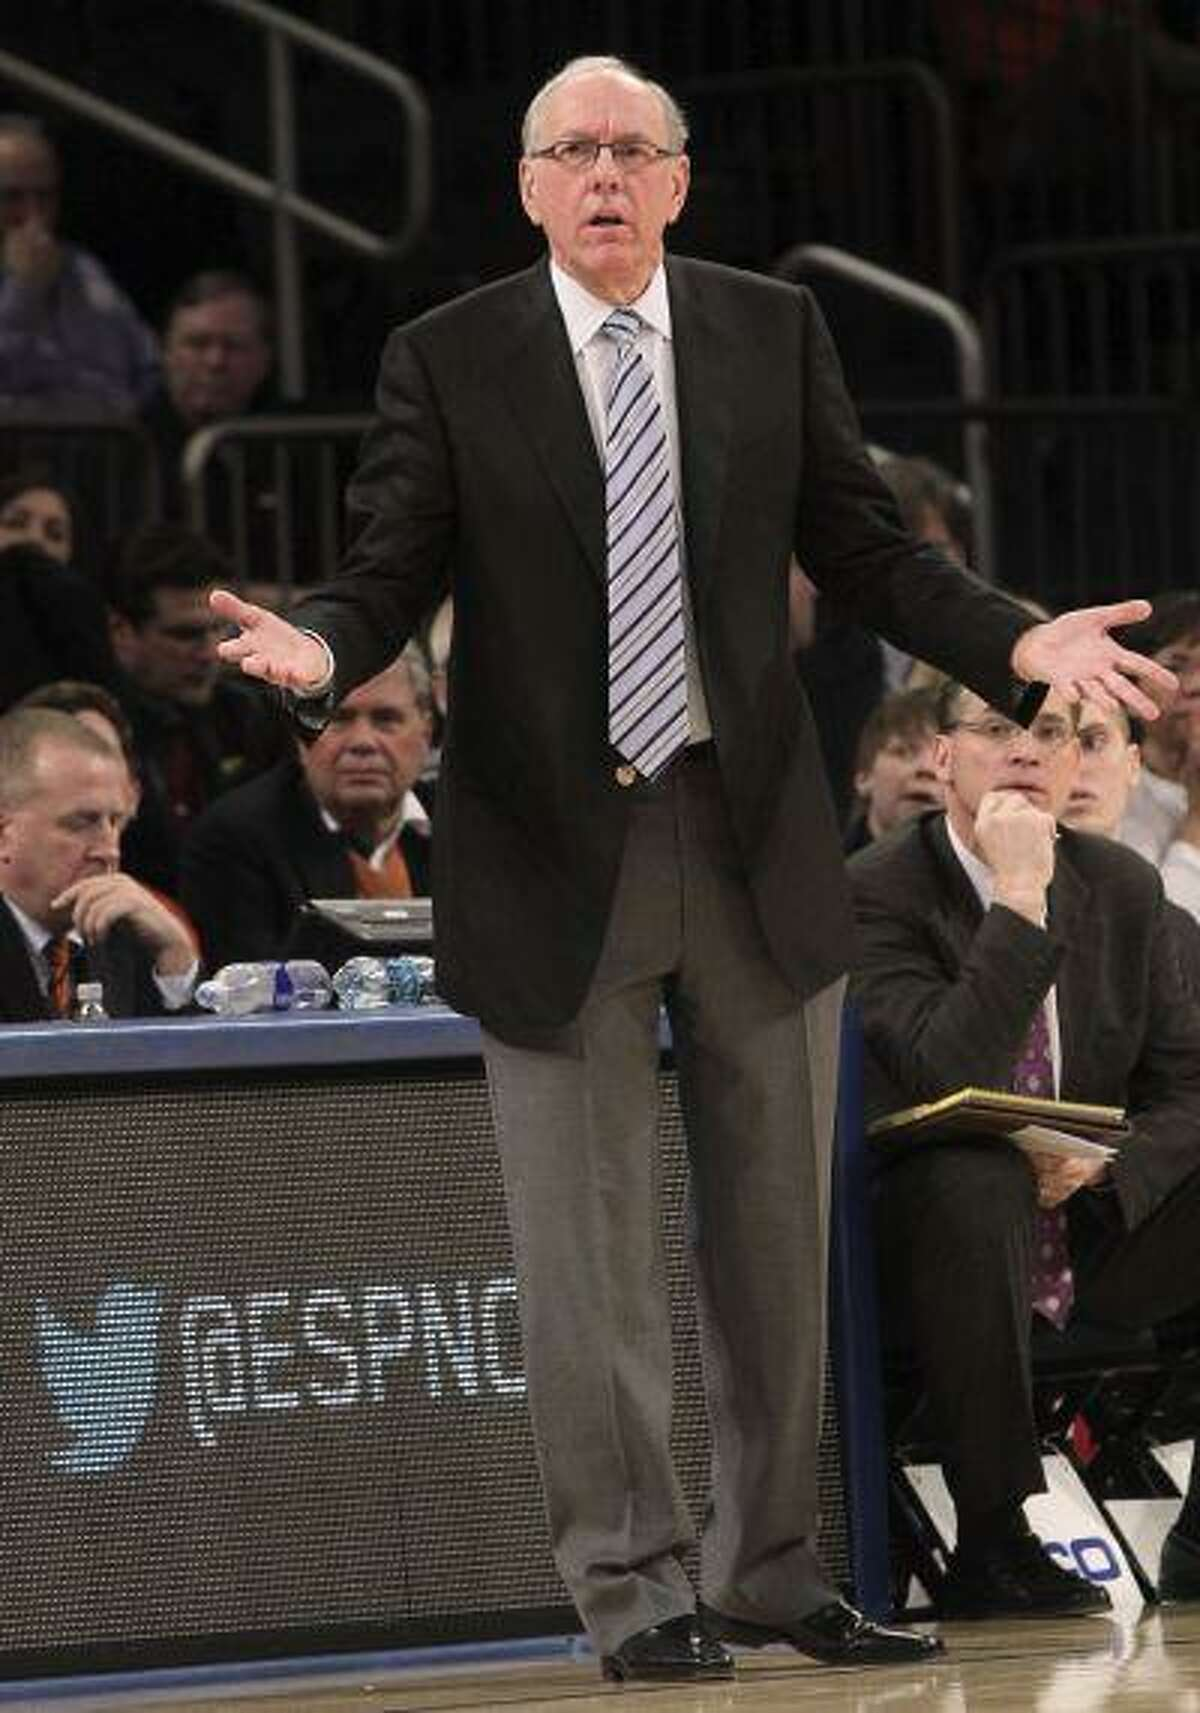 Syracuse head coach Jim Boeheim gestures during the first half of an game against Seton Hall at the Big East Conference tournament, in New York, March 13, 2013.